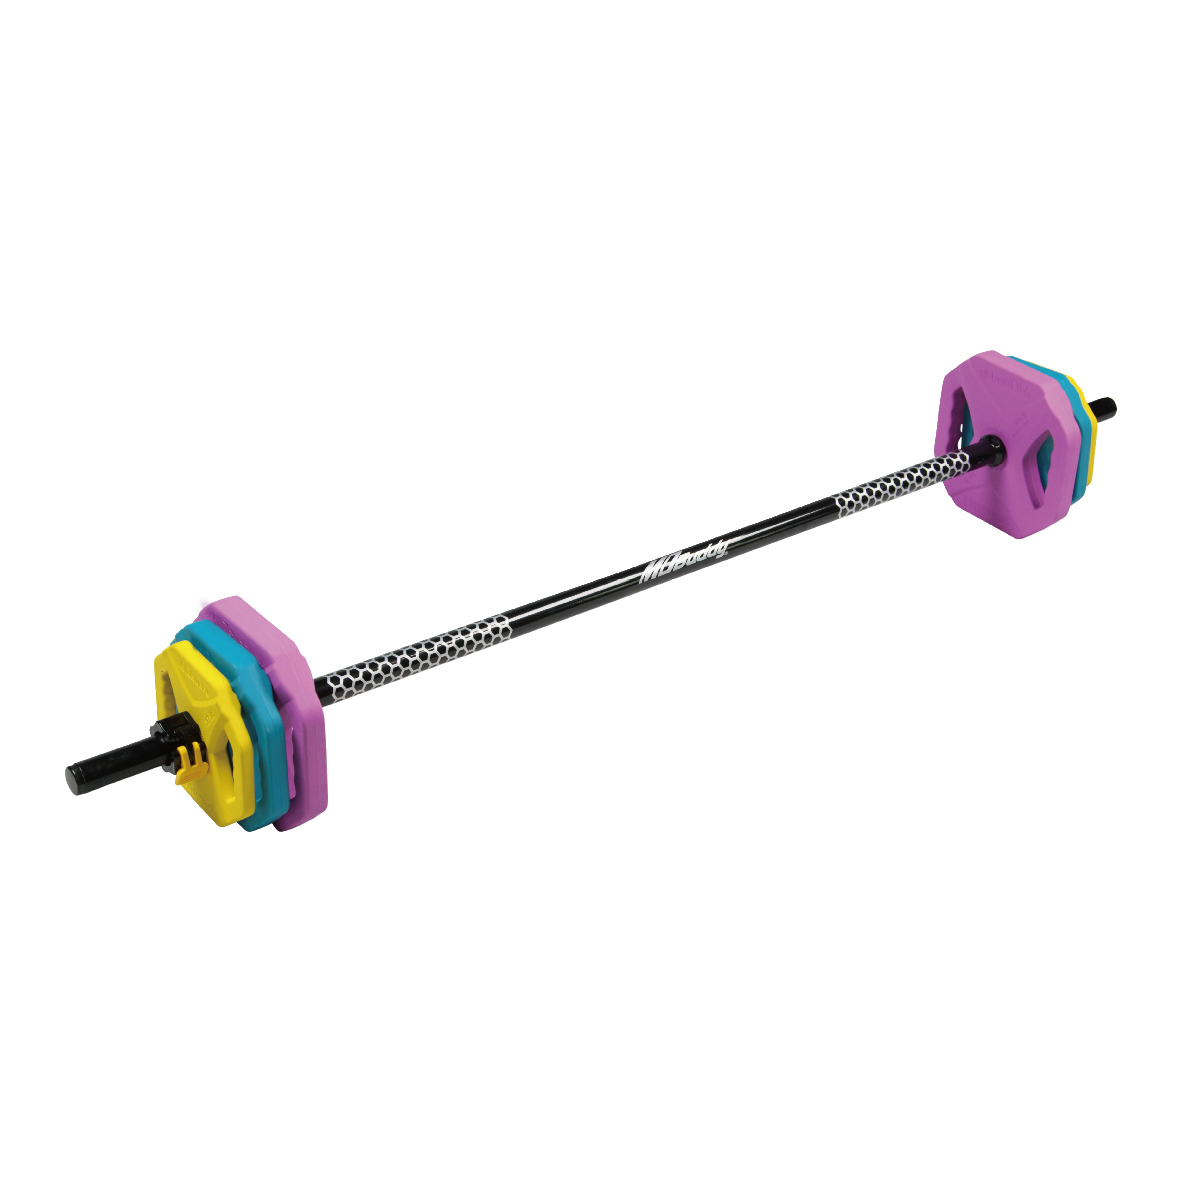 Pump bar set by Renouf Fitness